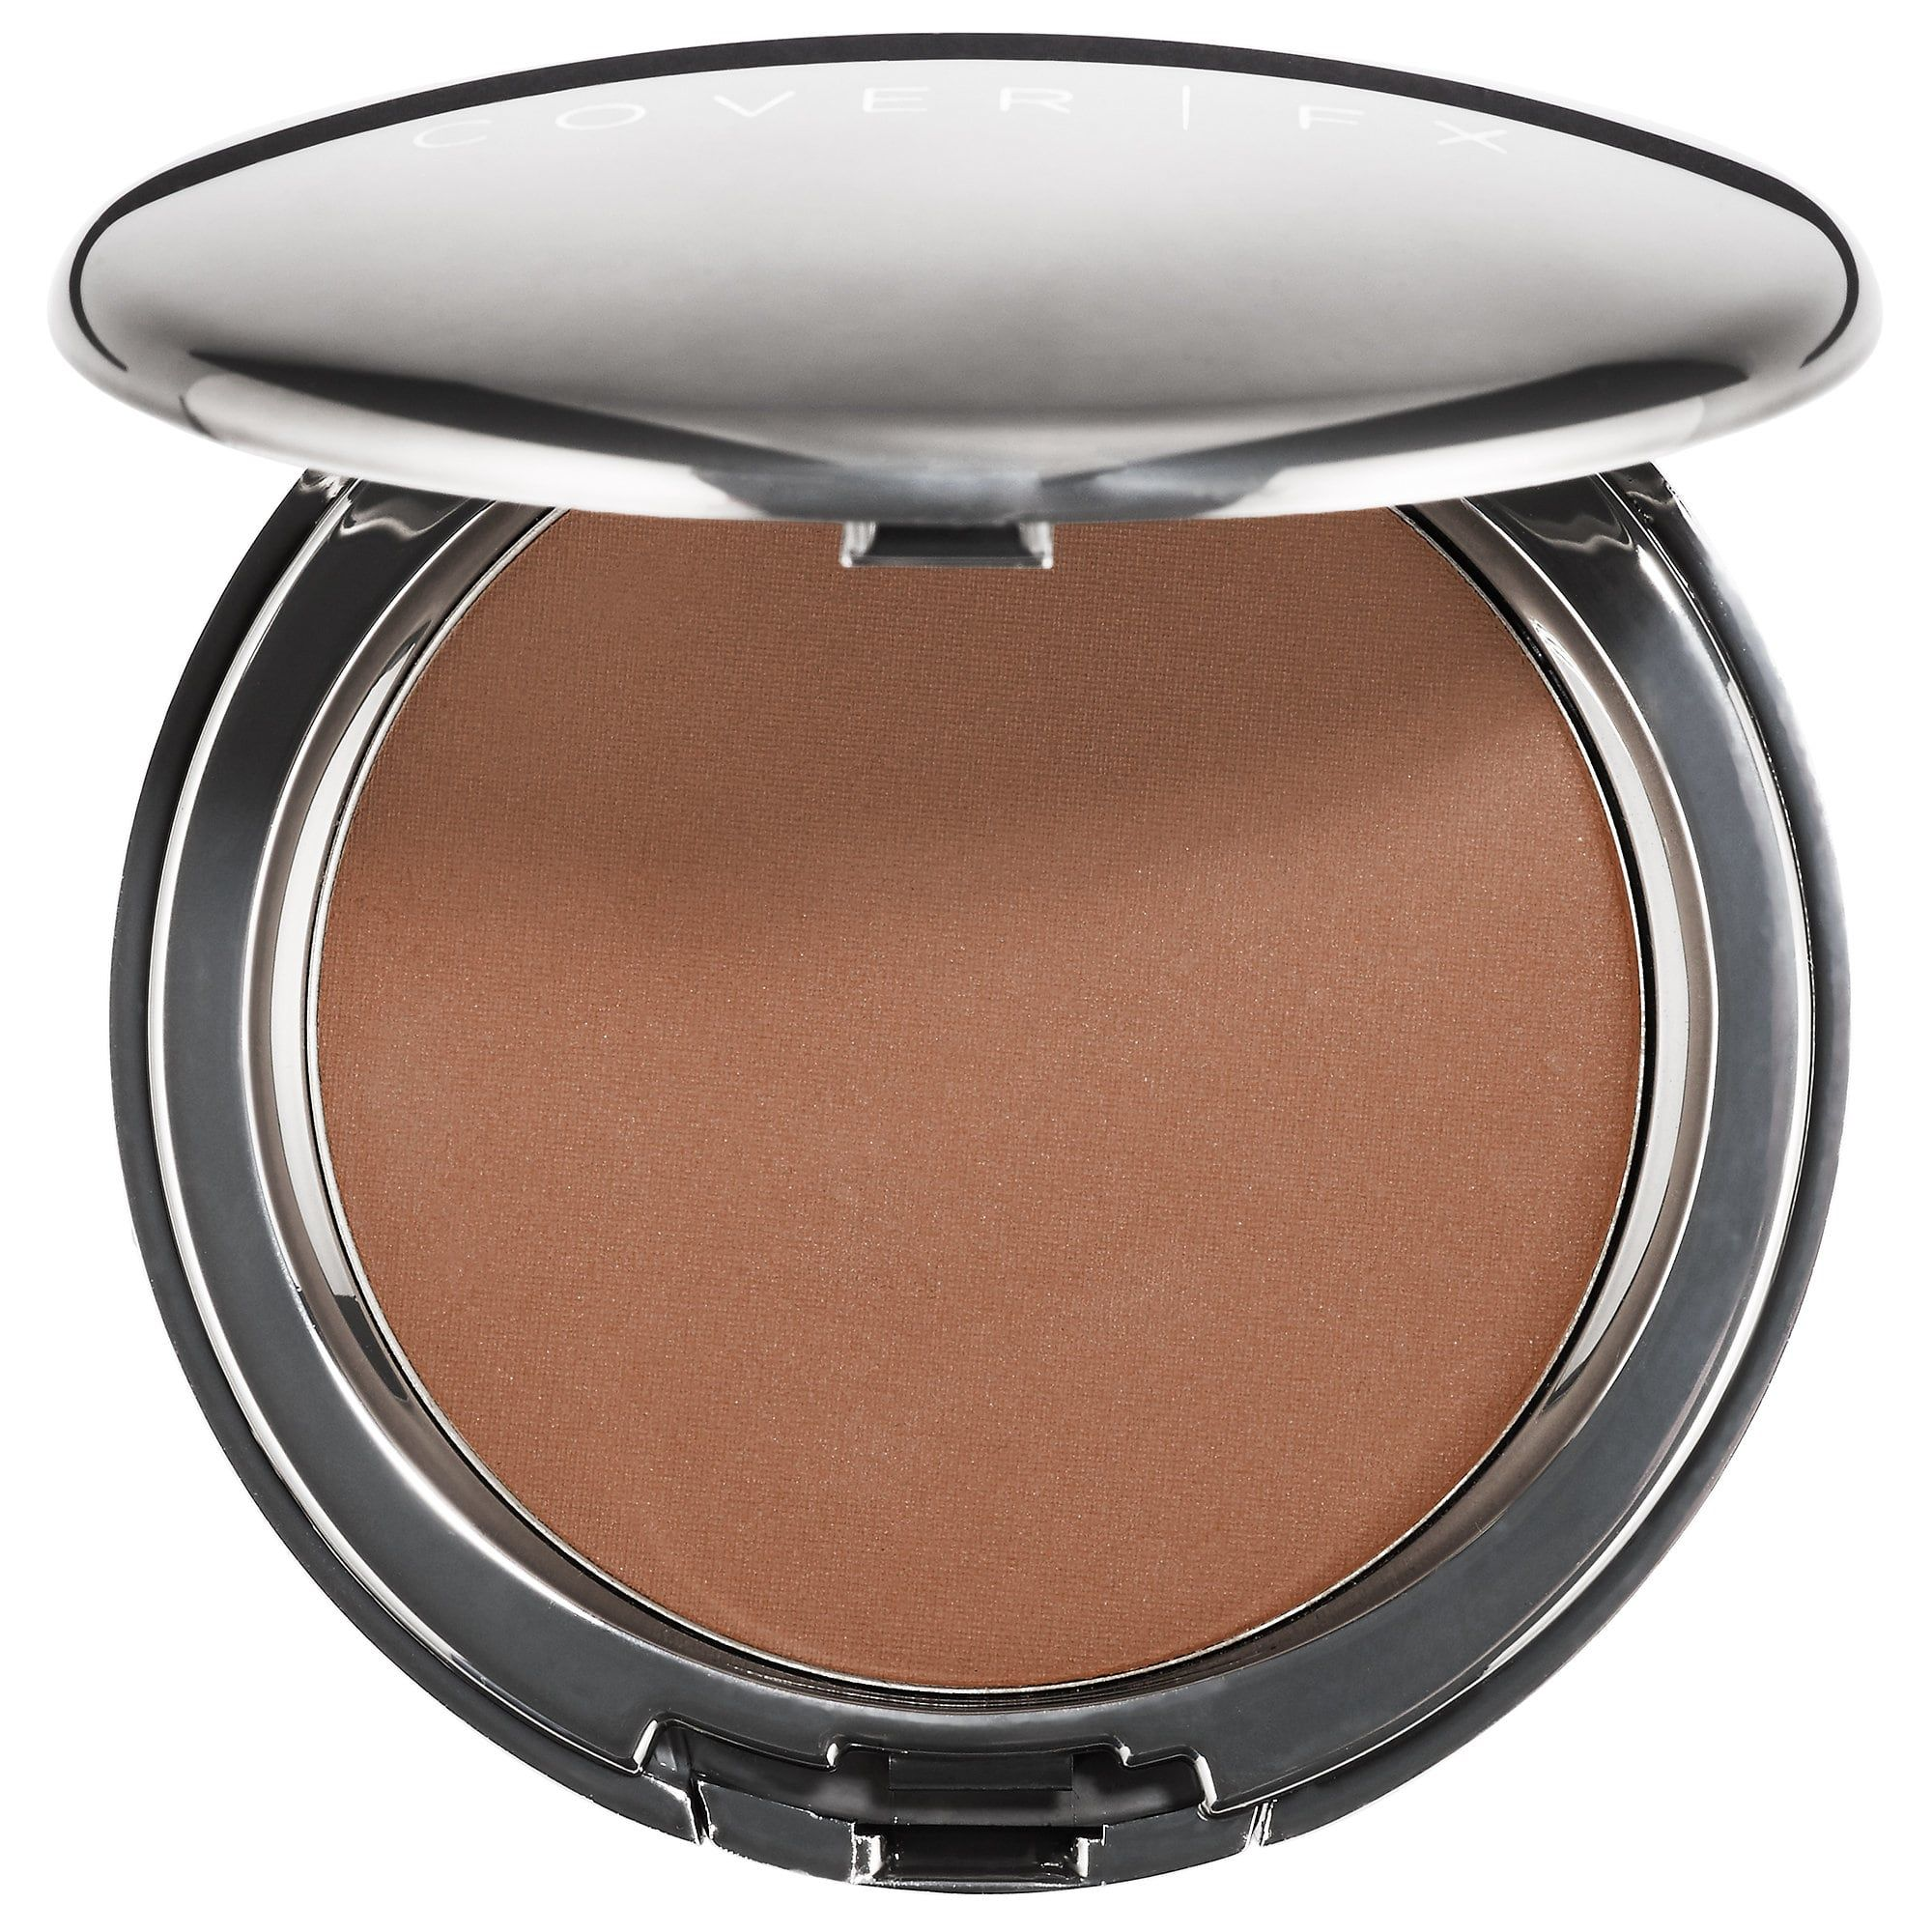 Perfect Pressed Setting Powder COVER FX Sephora